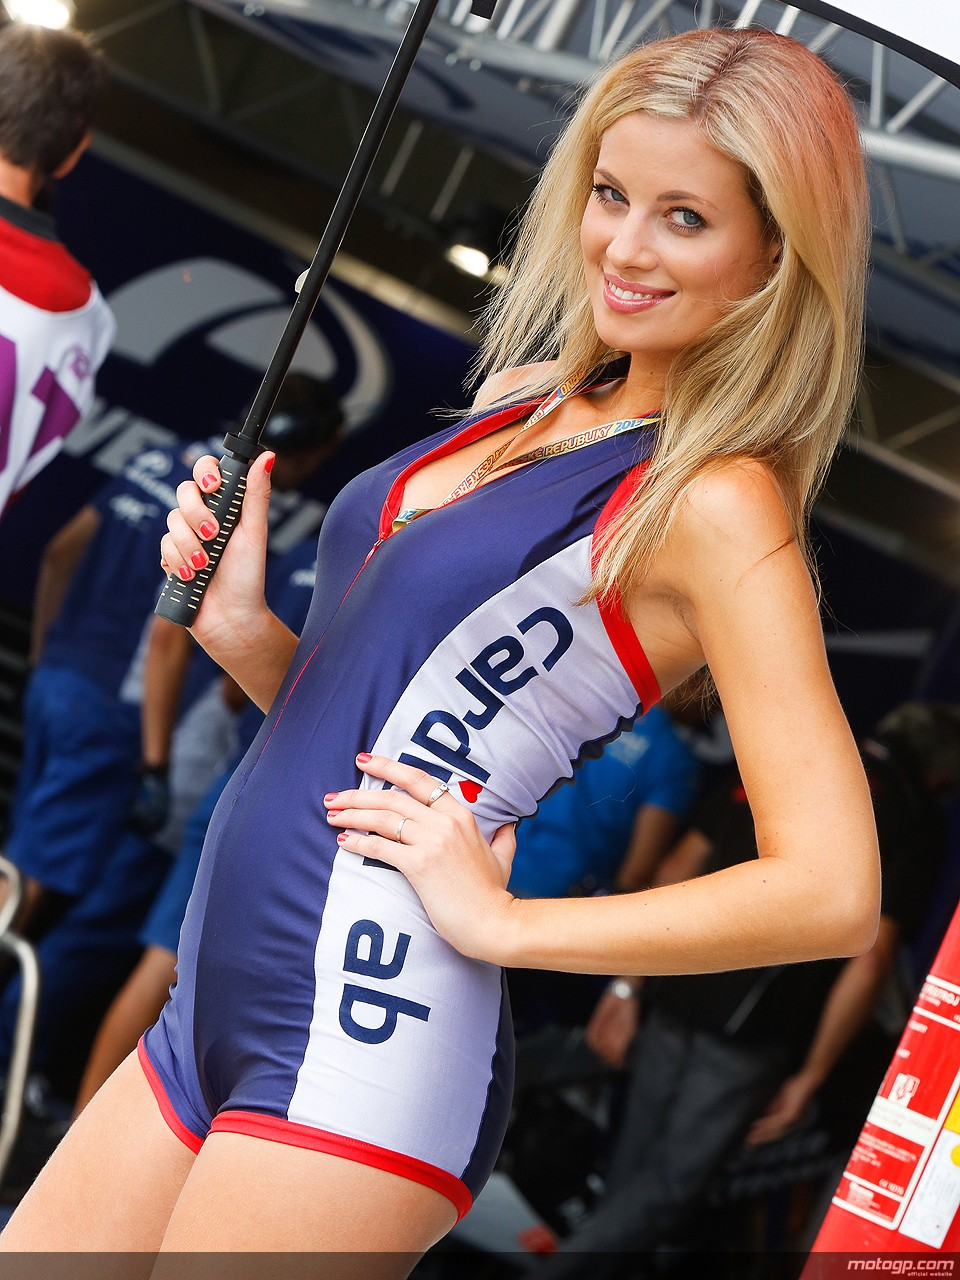 motogp czech republic paddock brno grid babes umbrella most gp moto gorgeous pit models autoevolution boostcruising promo race bike f1